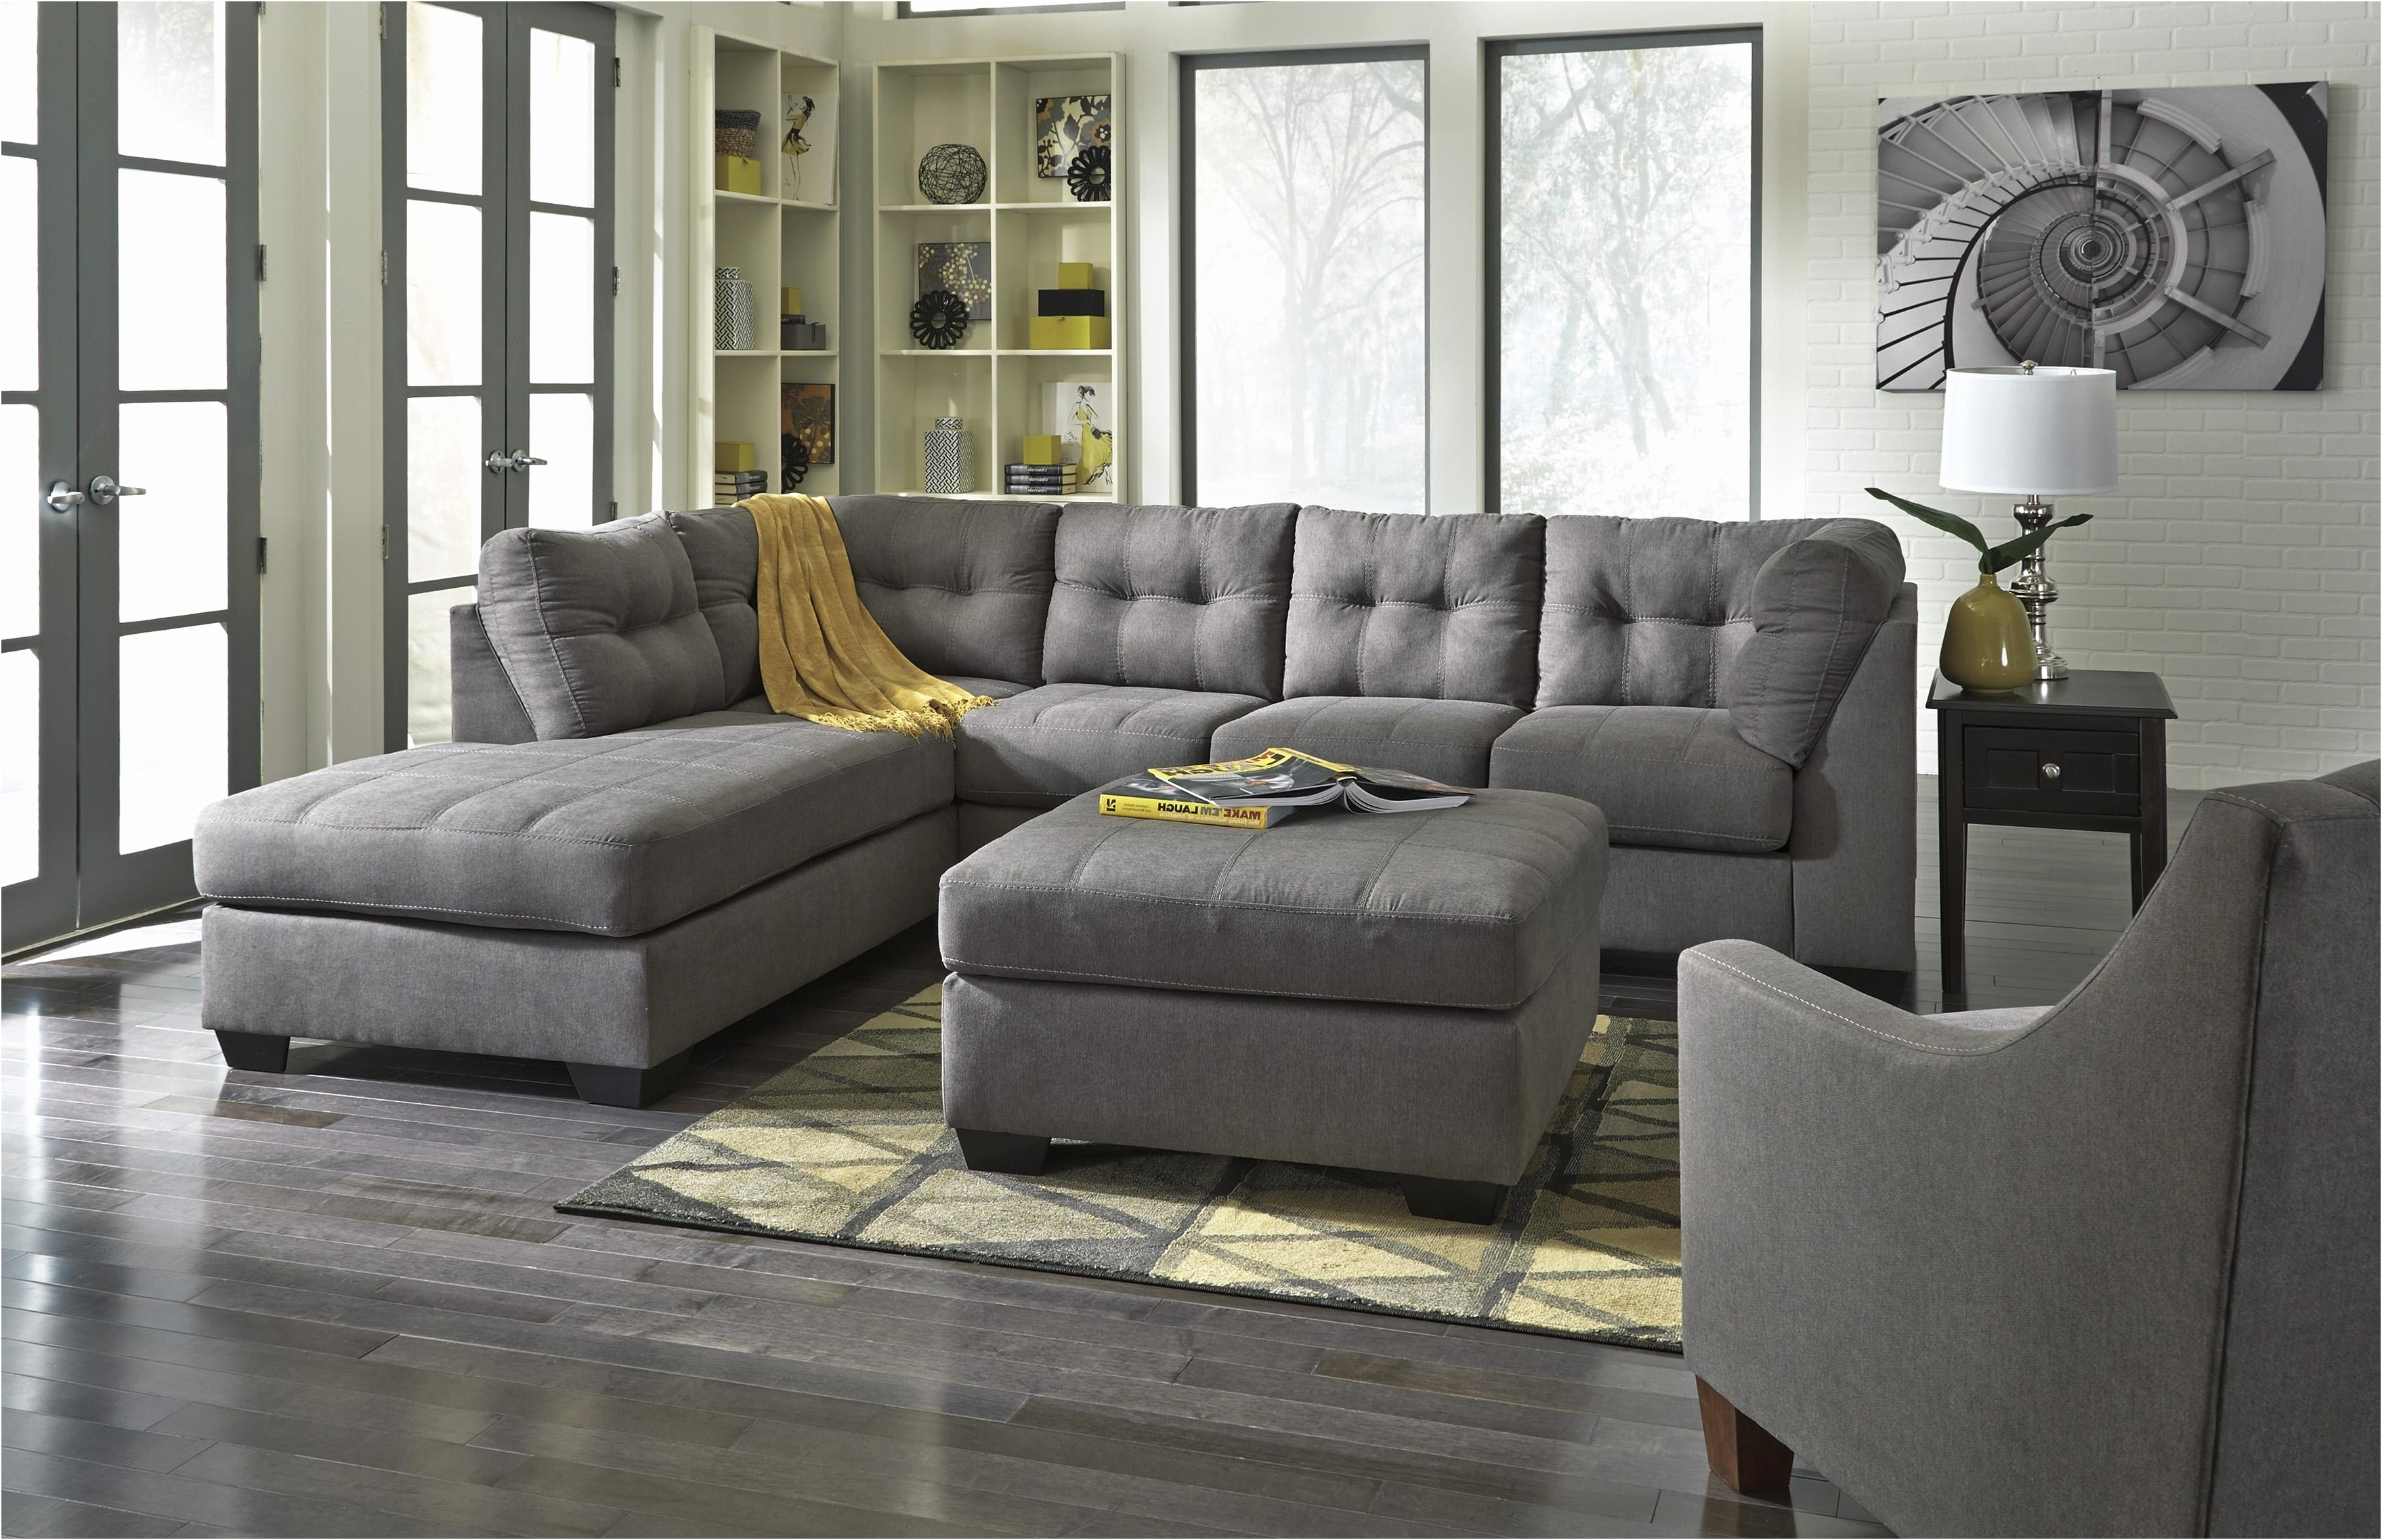 Latest Unique Berkline Leather Sofa Elegant – Intuisiblog Within Berkline Sectional Sofas (View 9 of 20)